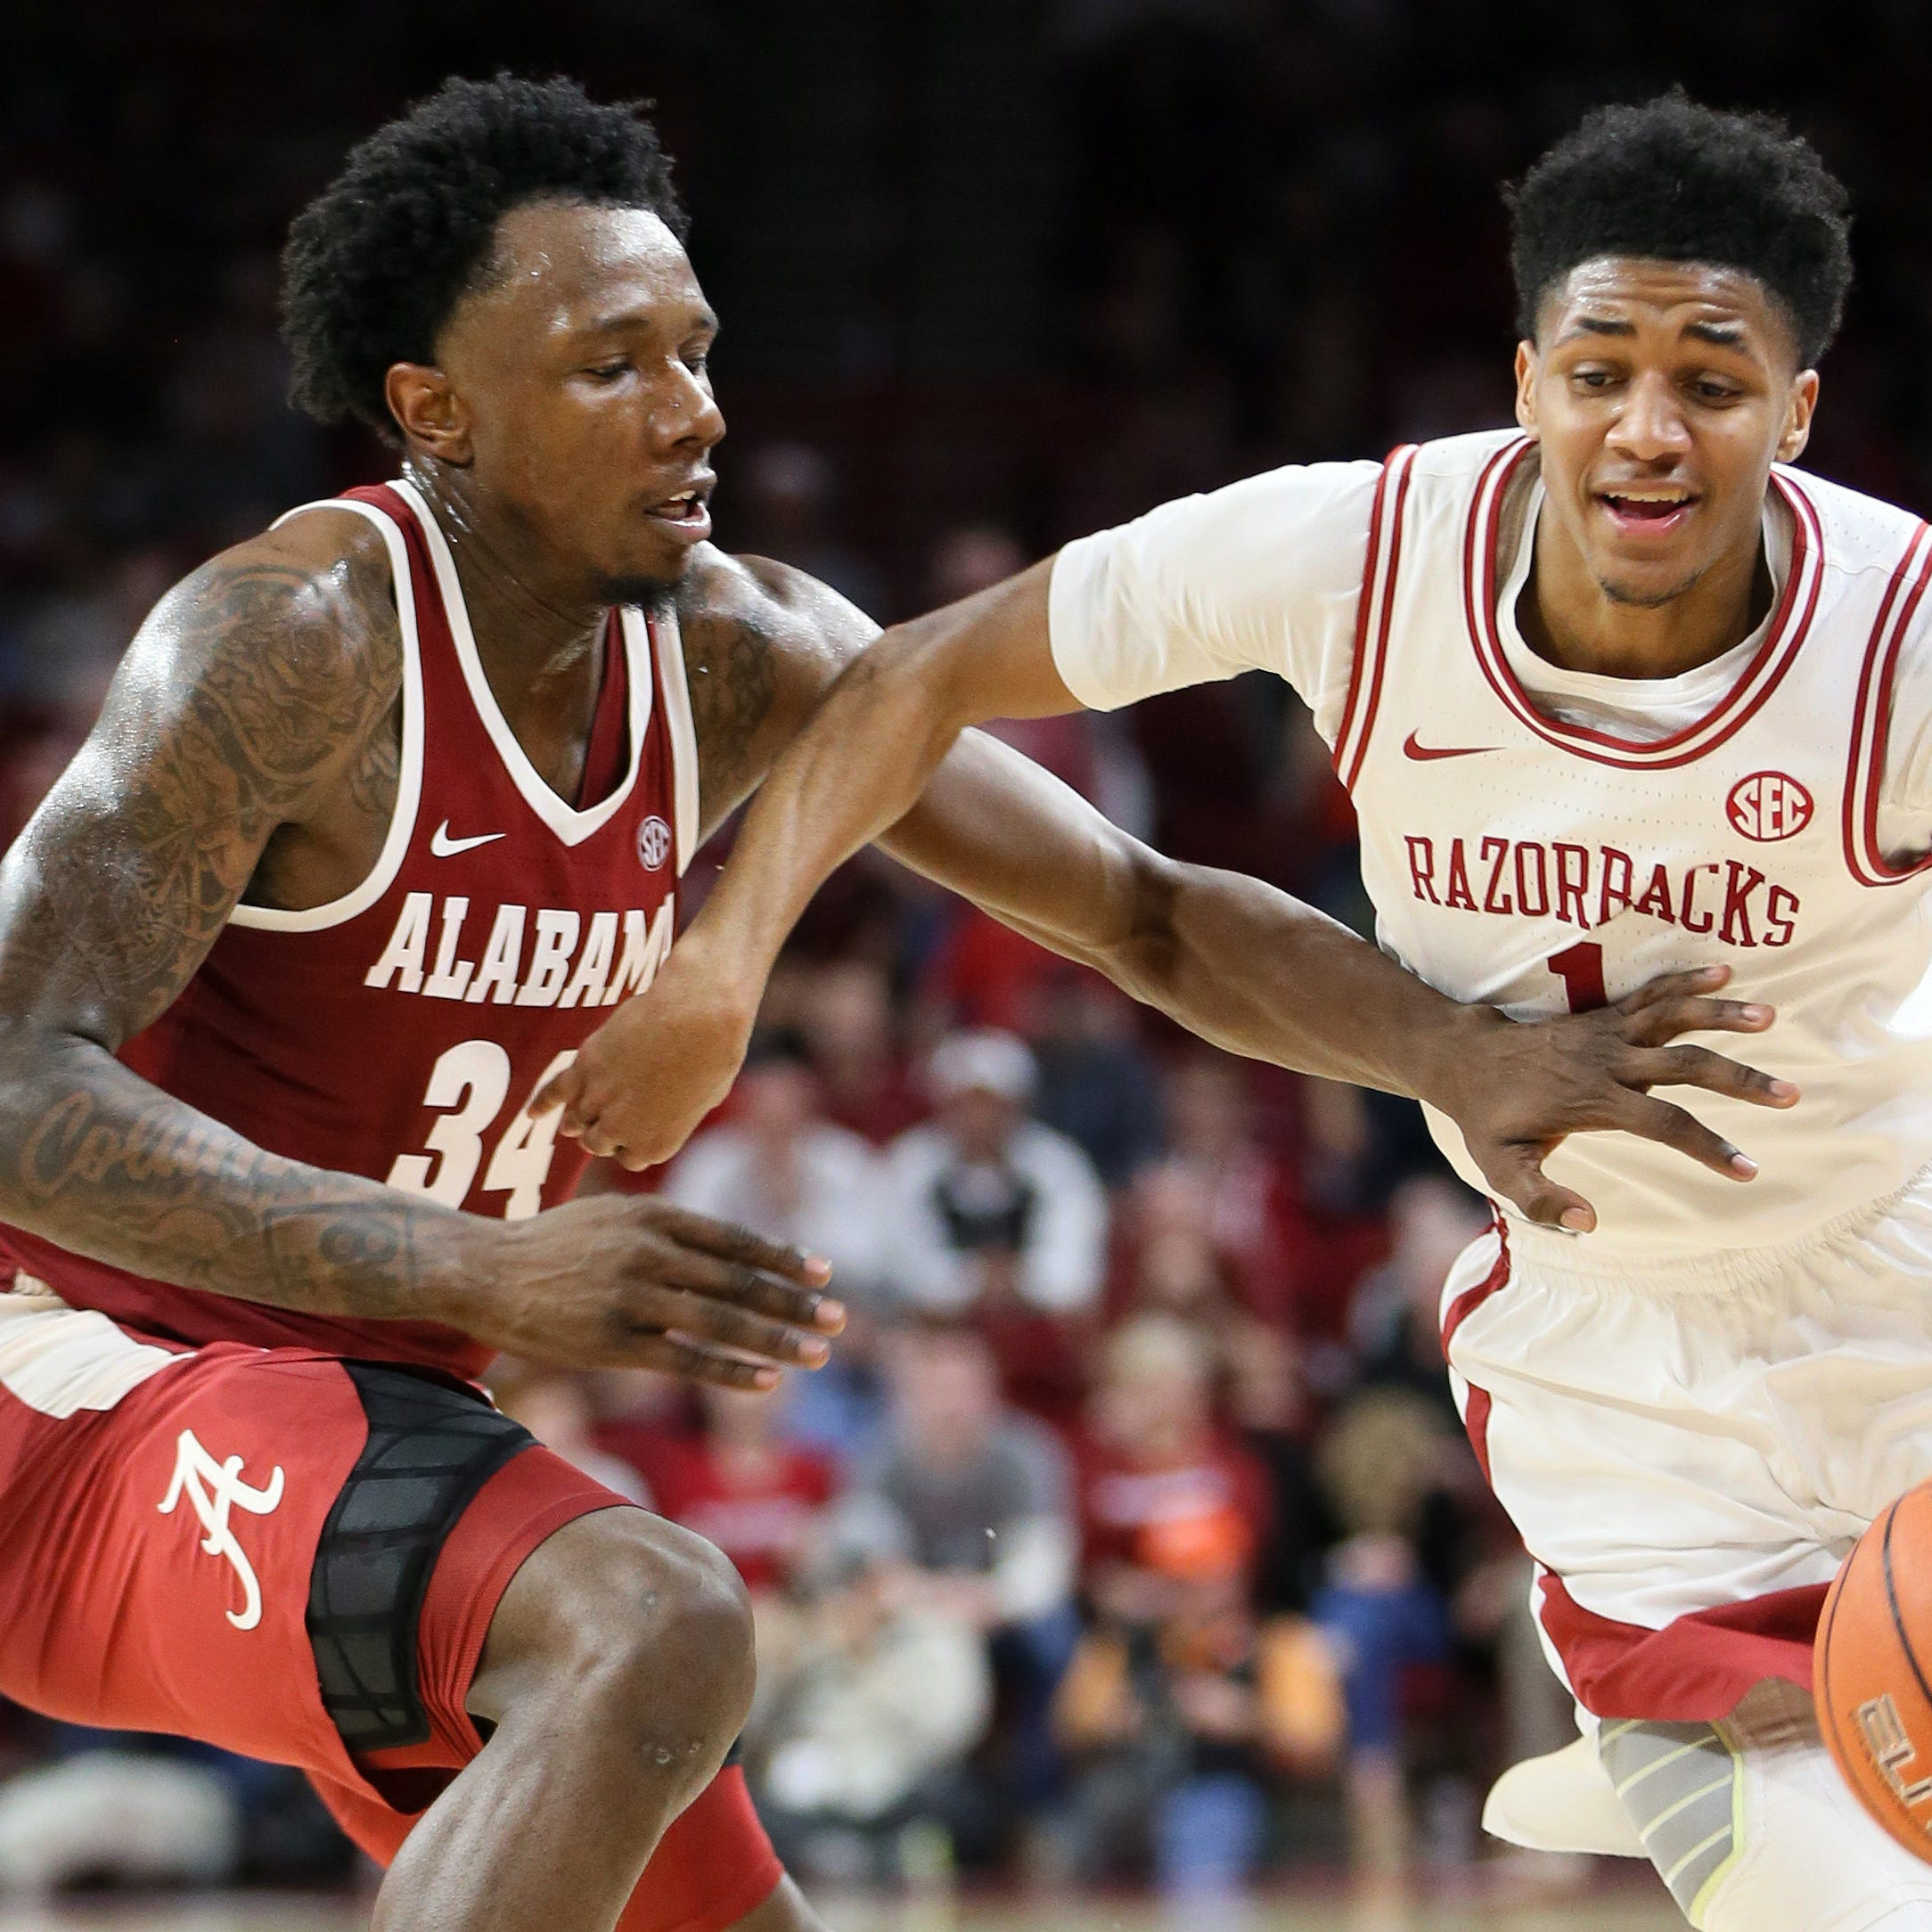 Joe Lunardi predicts Alabama basketball needs multiple SEC tournament wins for NCAA berth